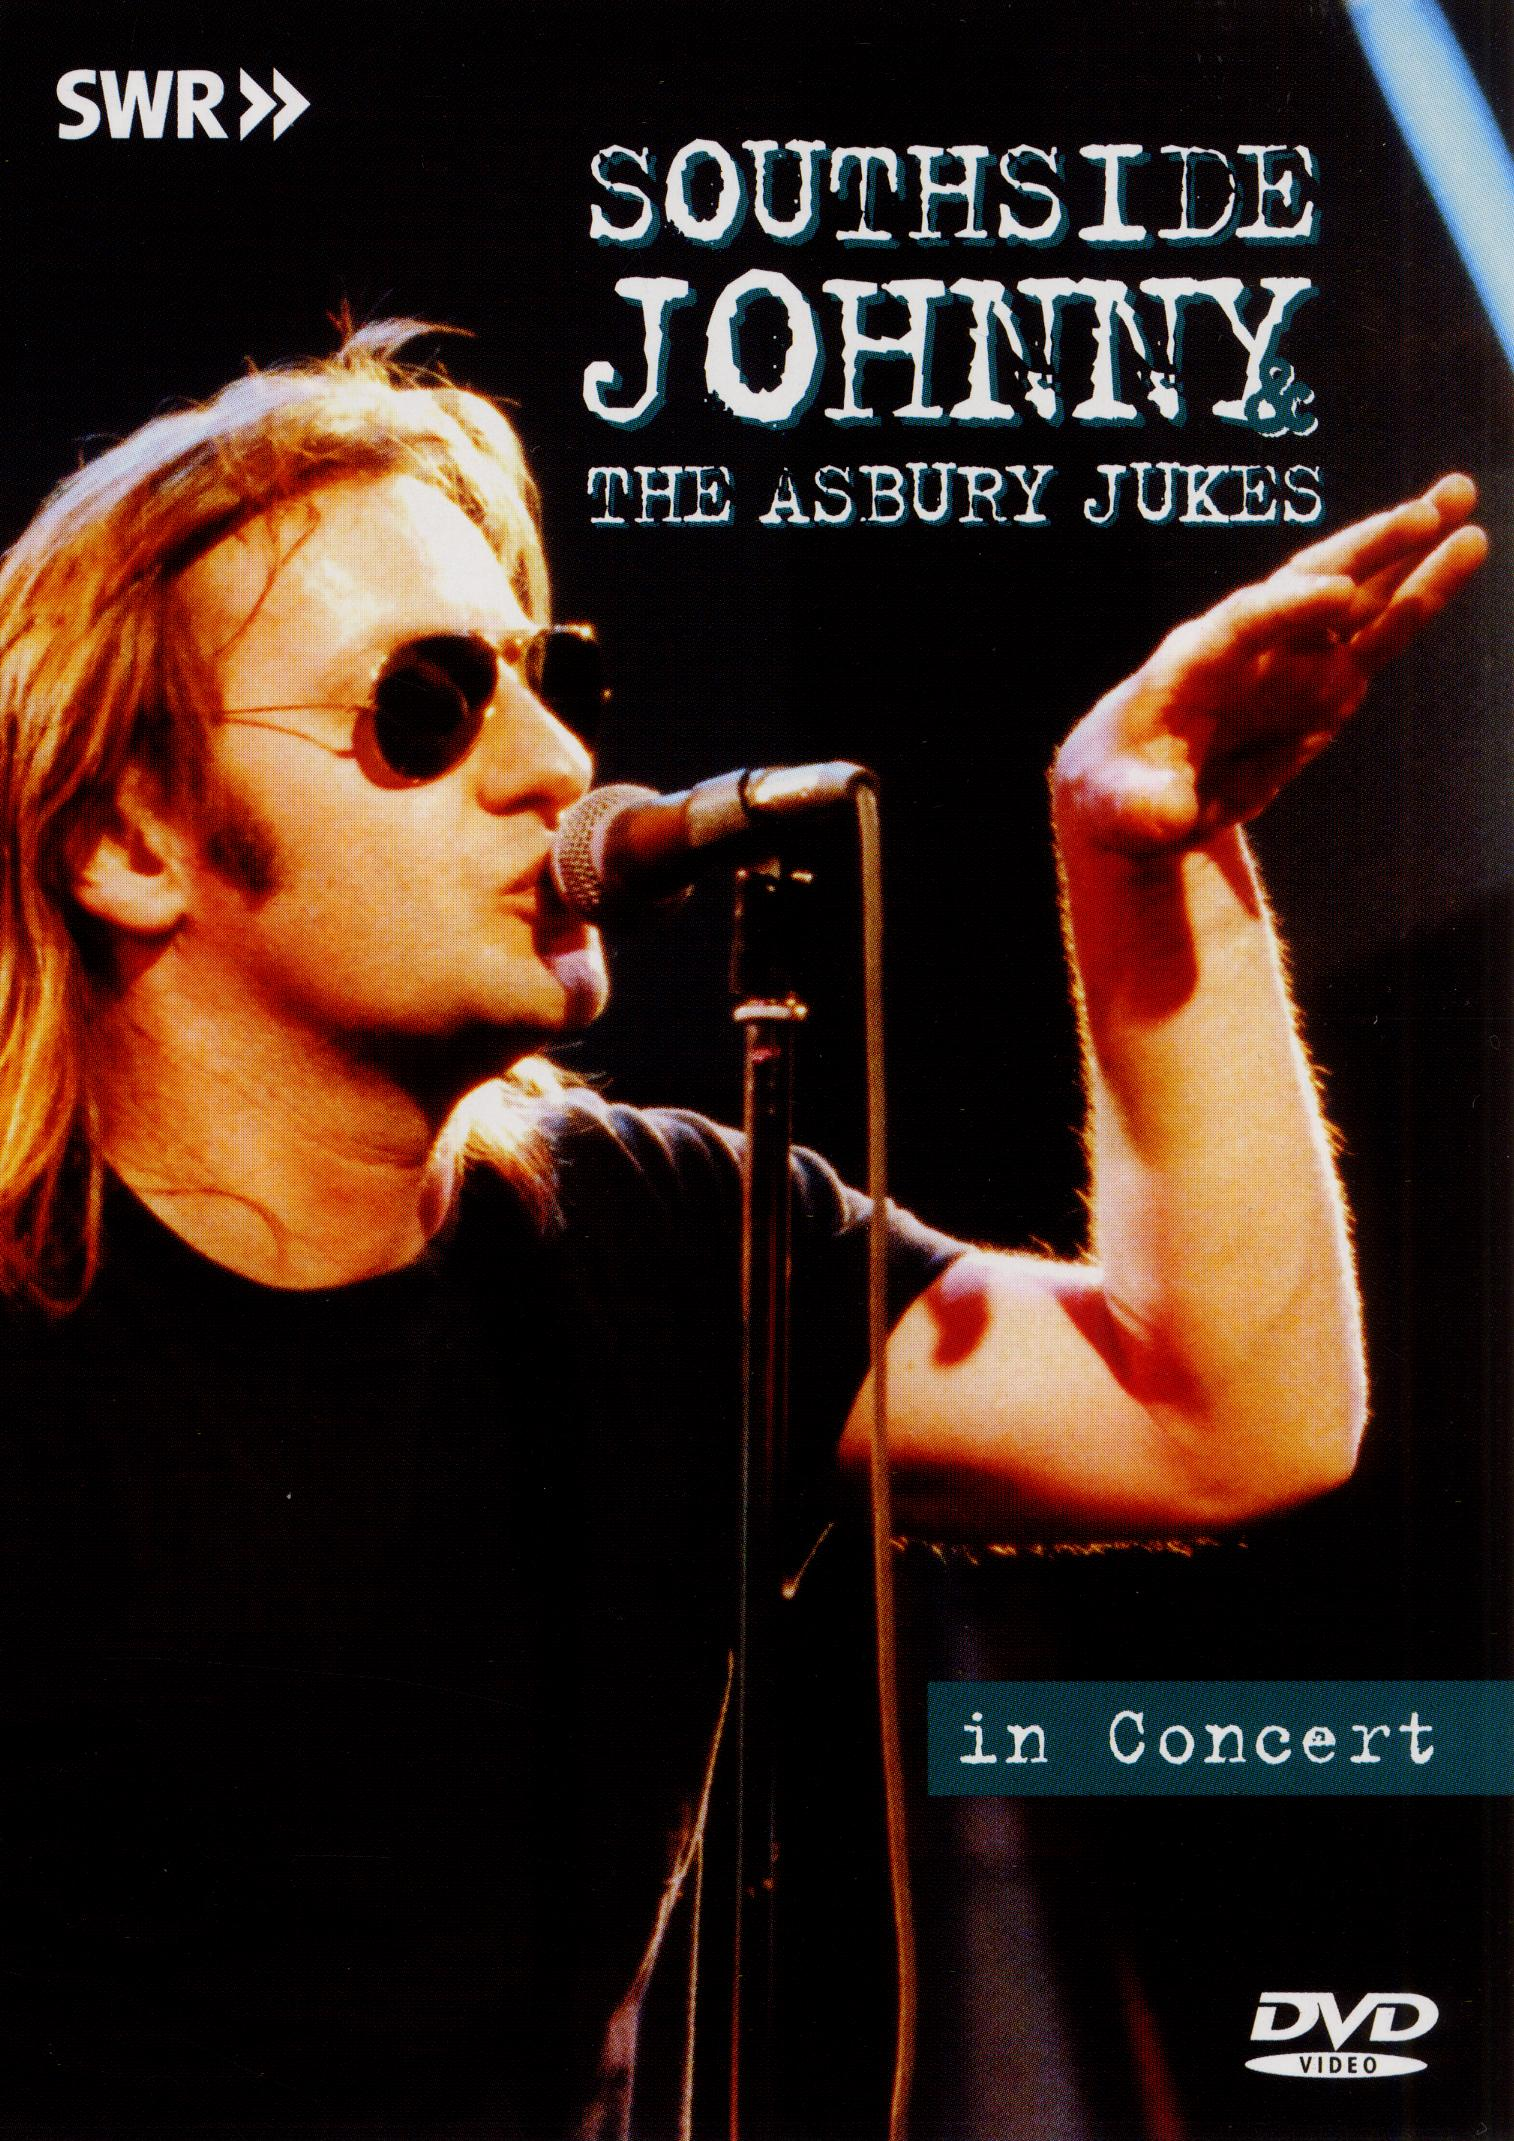 Ohne Filter - Musik Pur: Southside Johnny and the Asbury Jukes in Concert